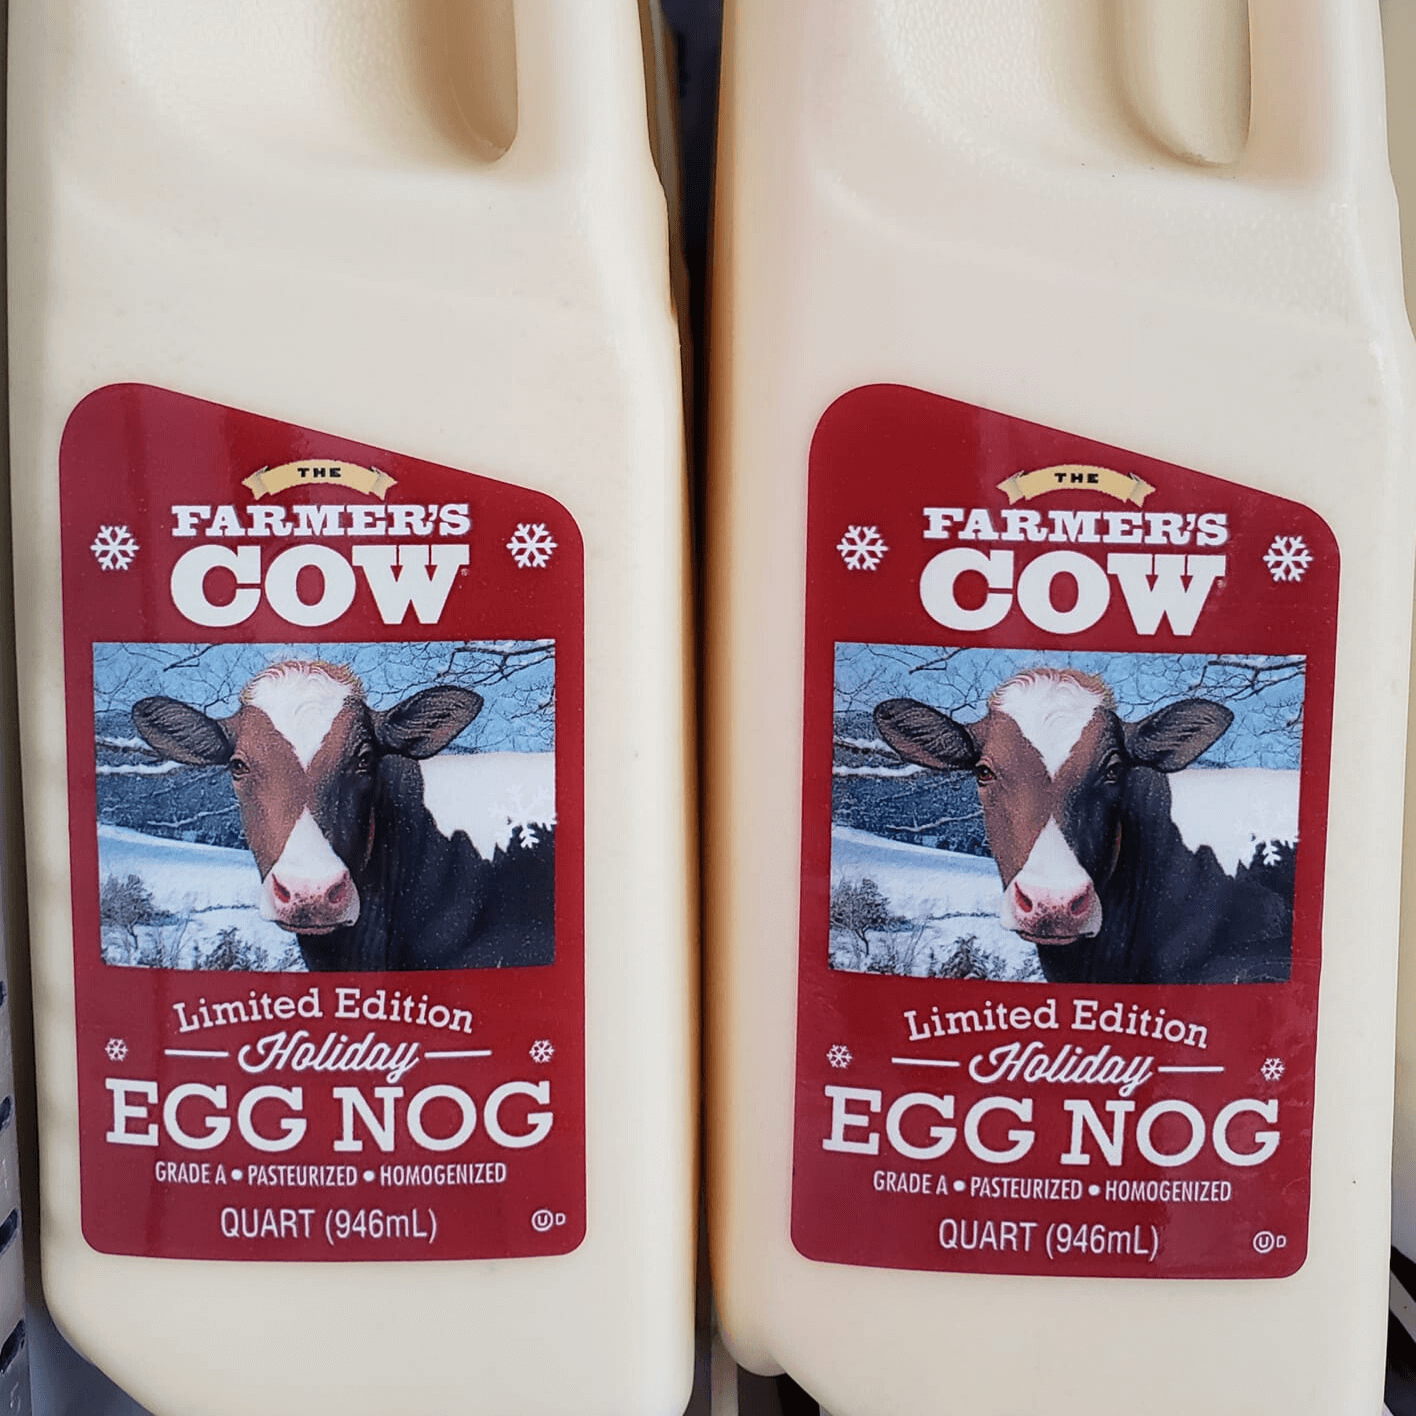 Take home some The Farmer's Cow Egg for the holidays